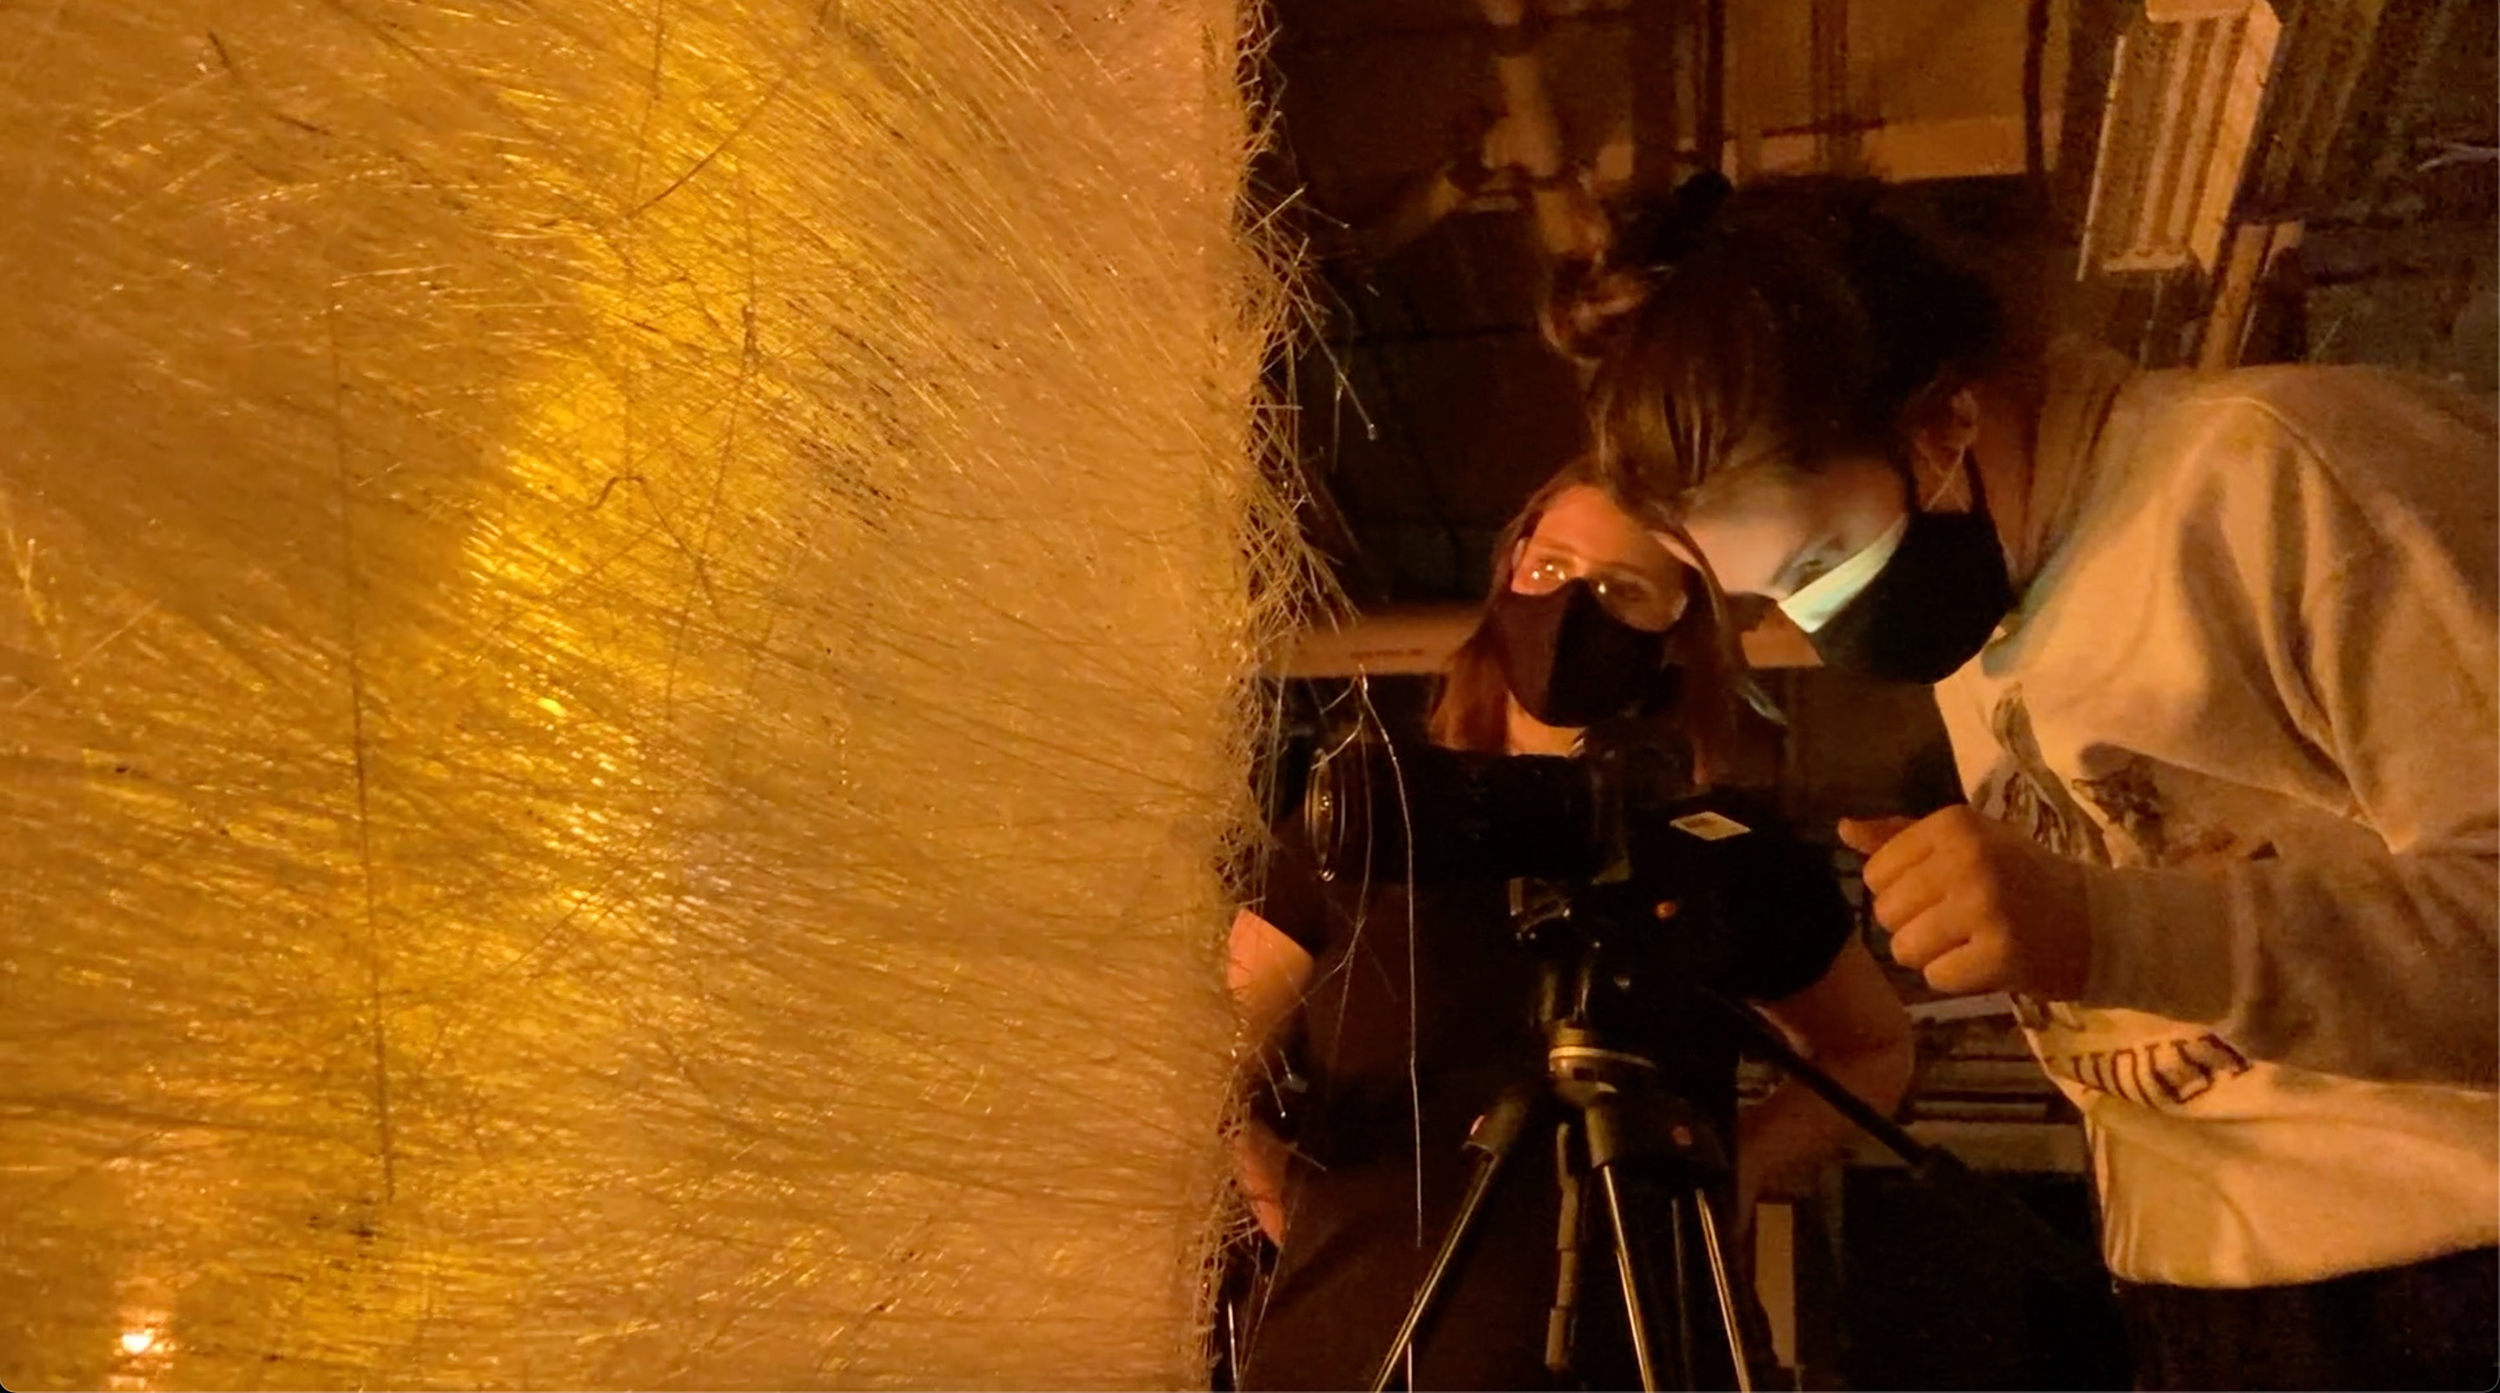 Trisha Pickelhaupt operates a camera to capture a large glass structure.